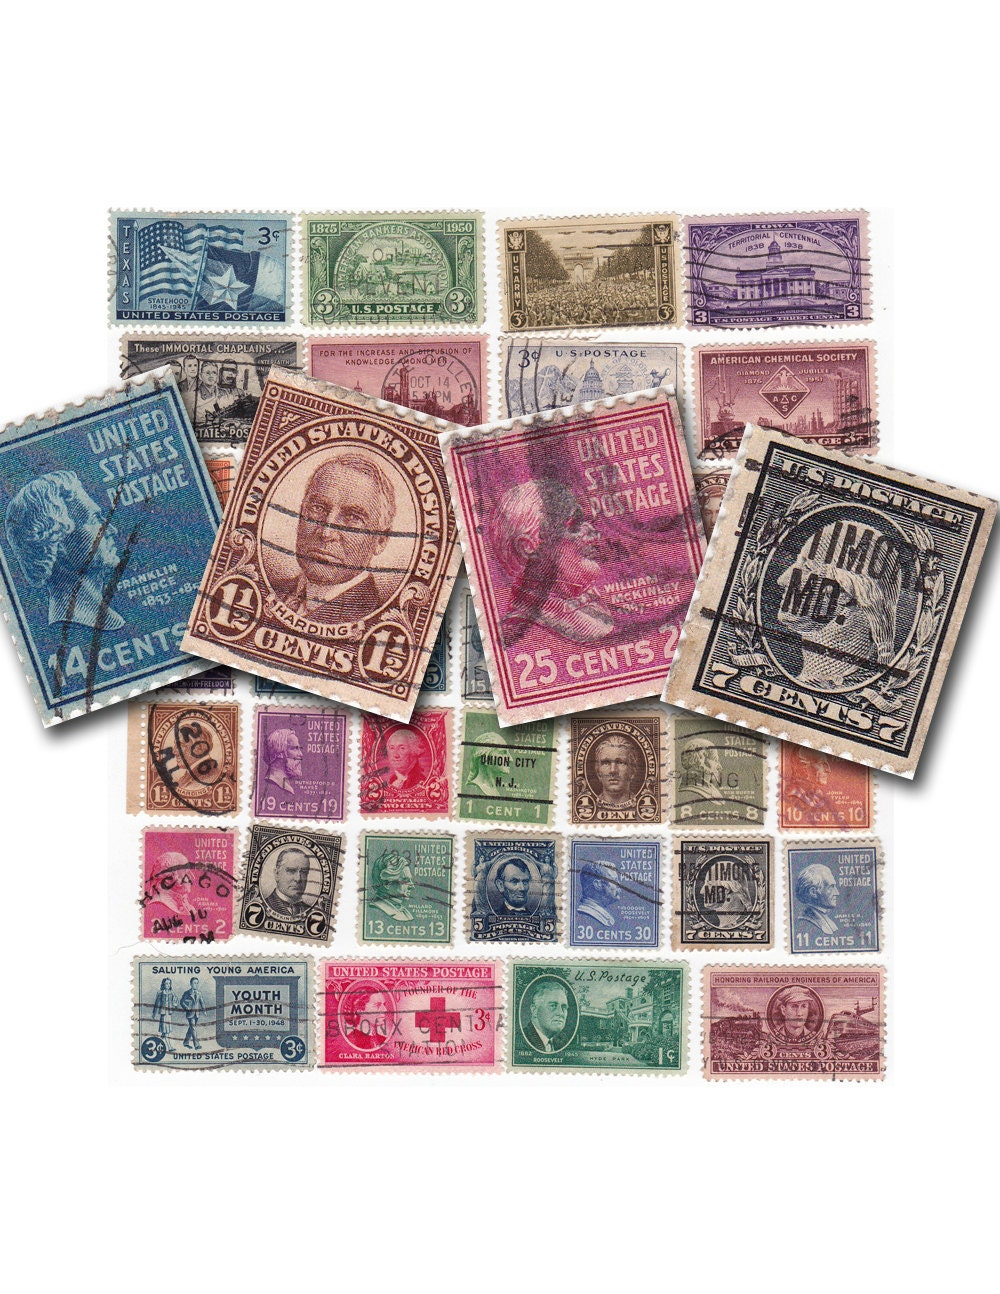 It is an image of Current Printable Postage Stamps